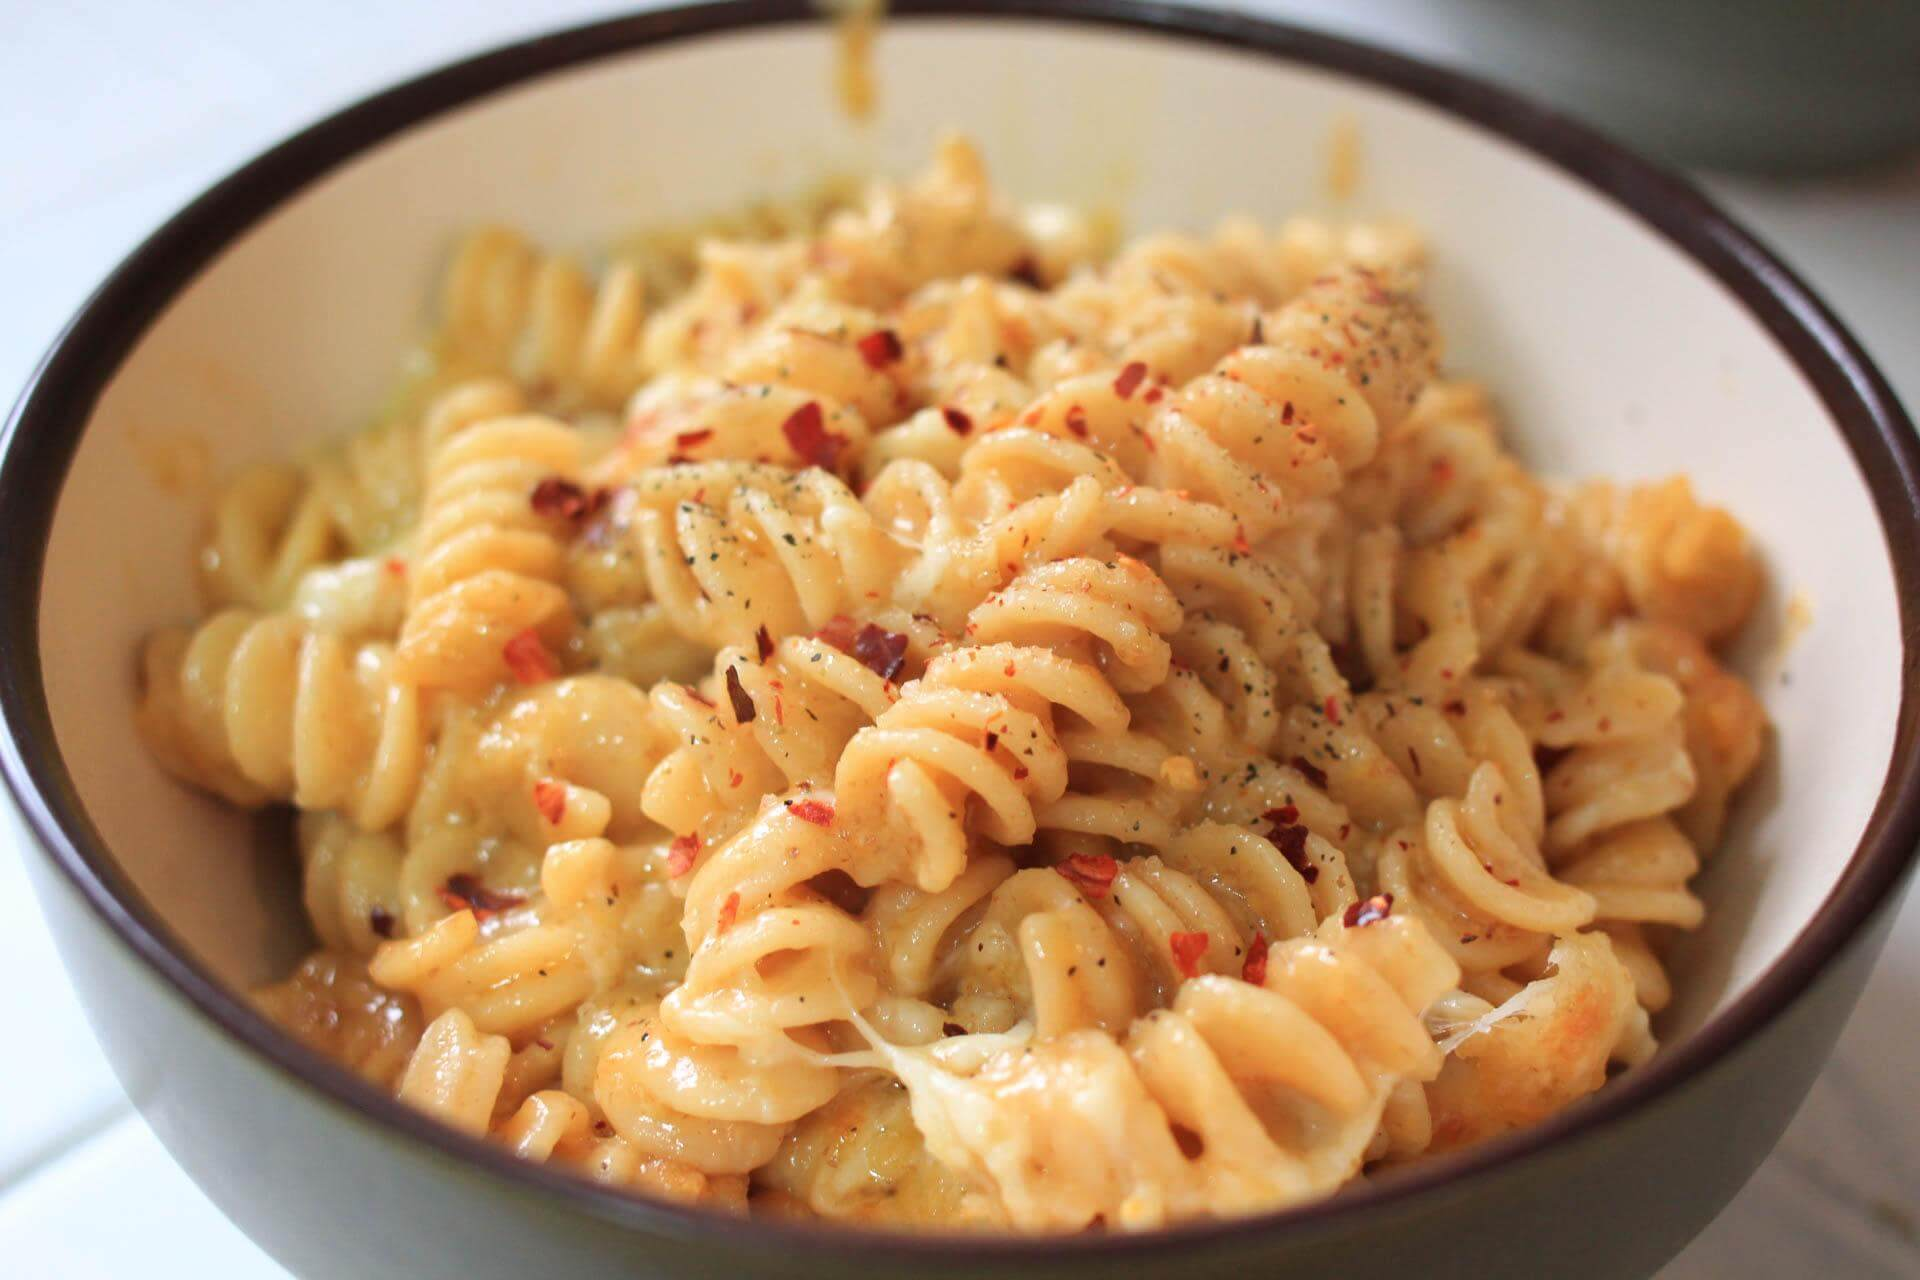 Seasoned macaroni and cheese